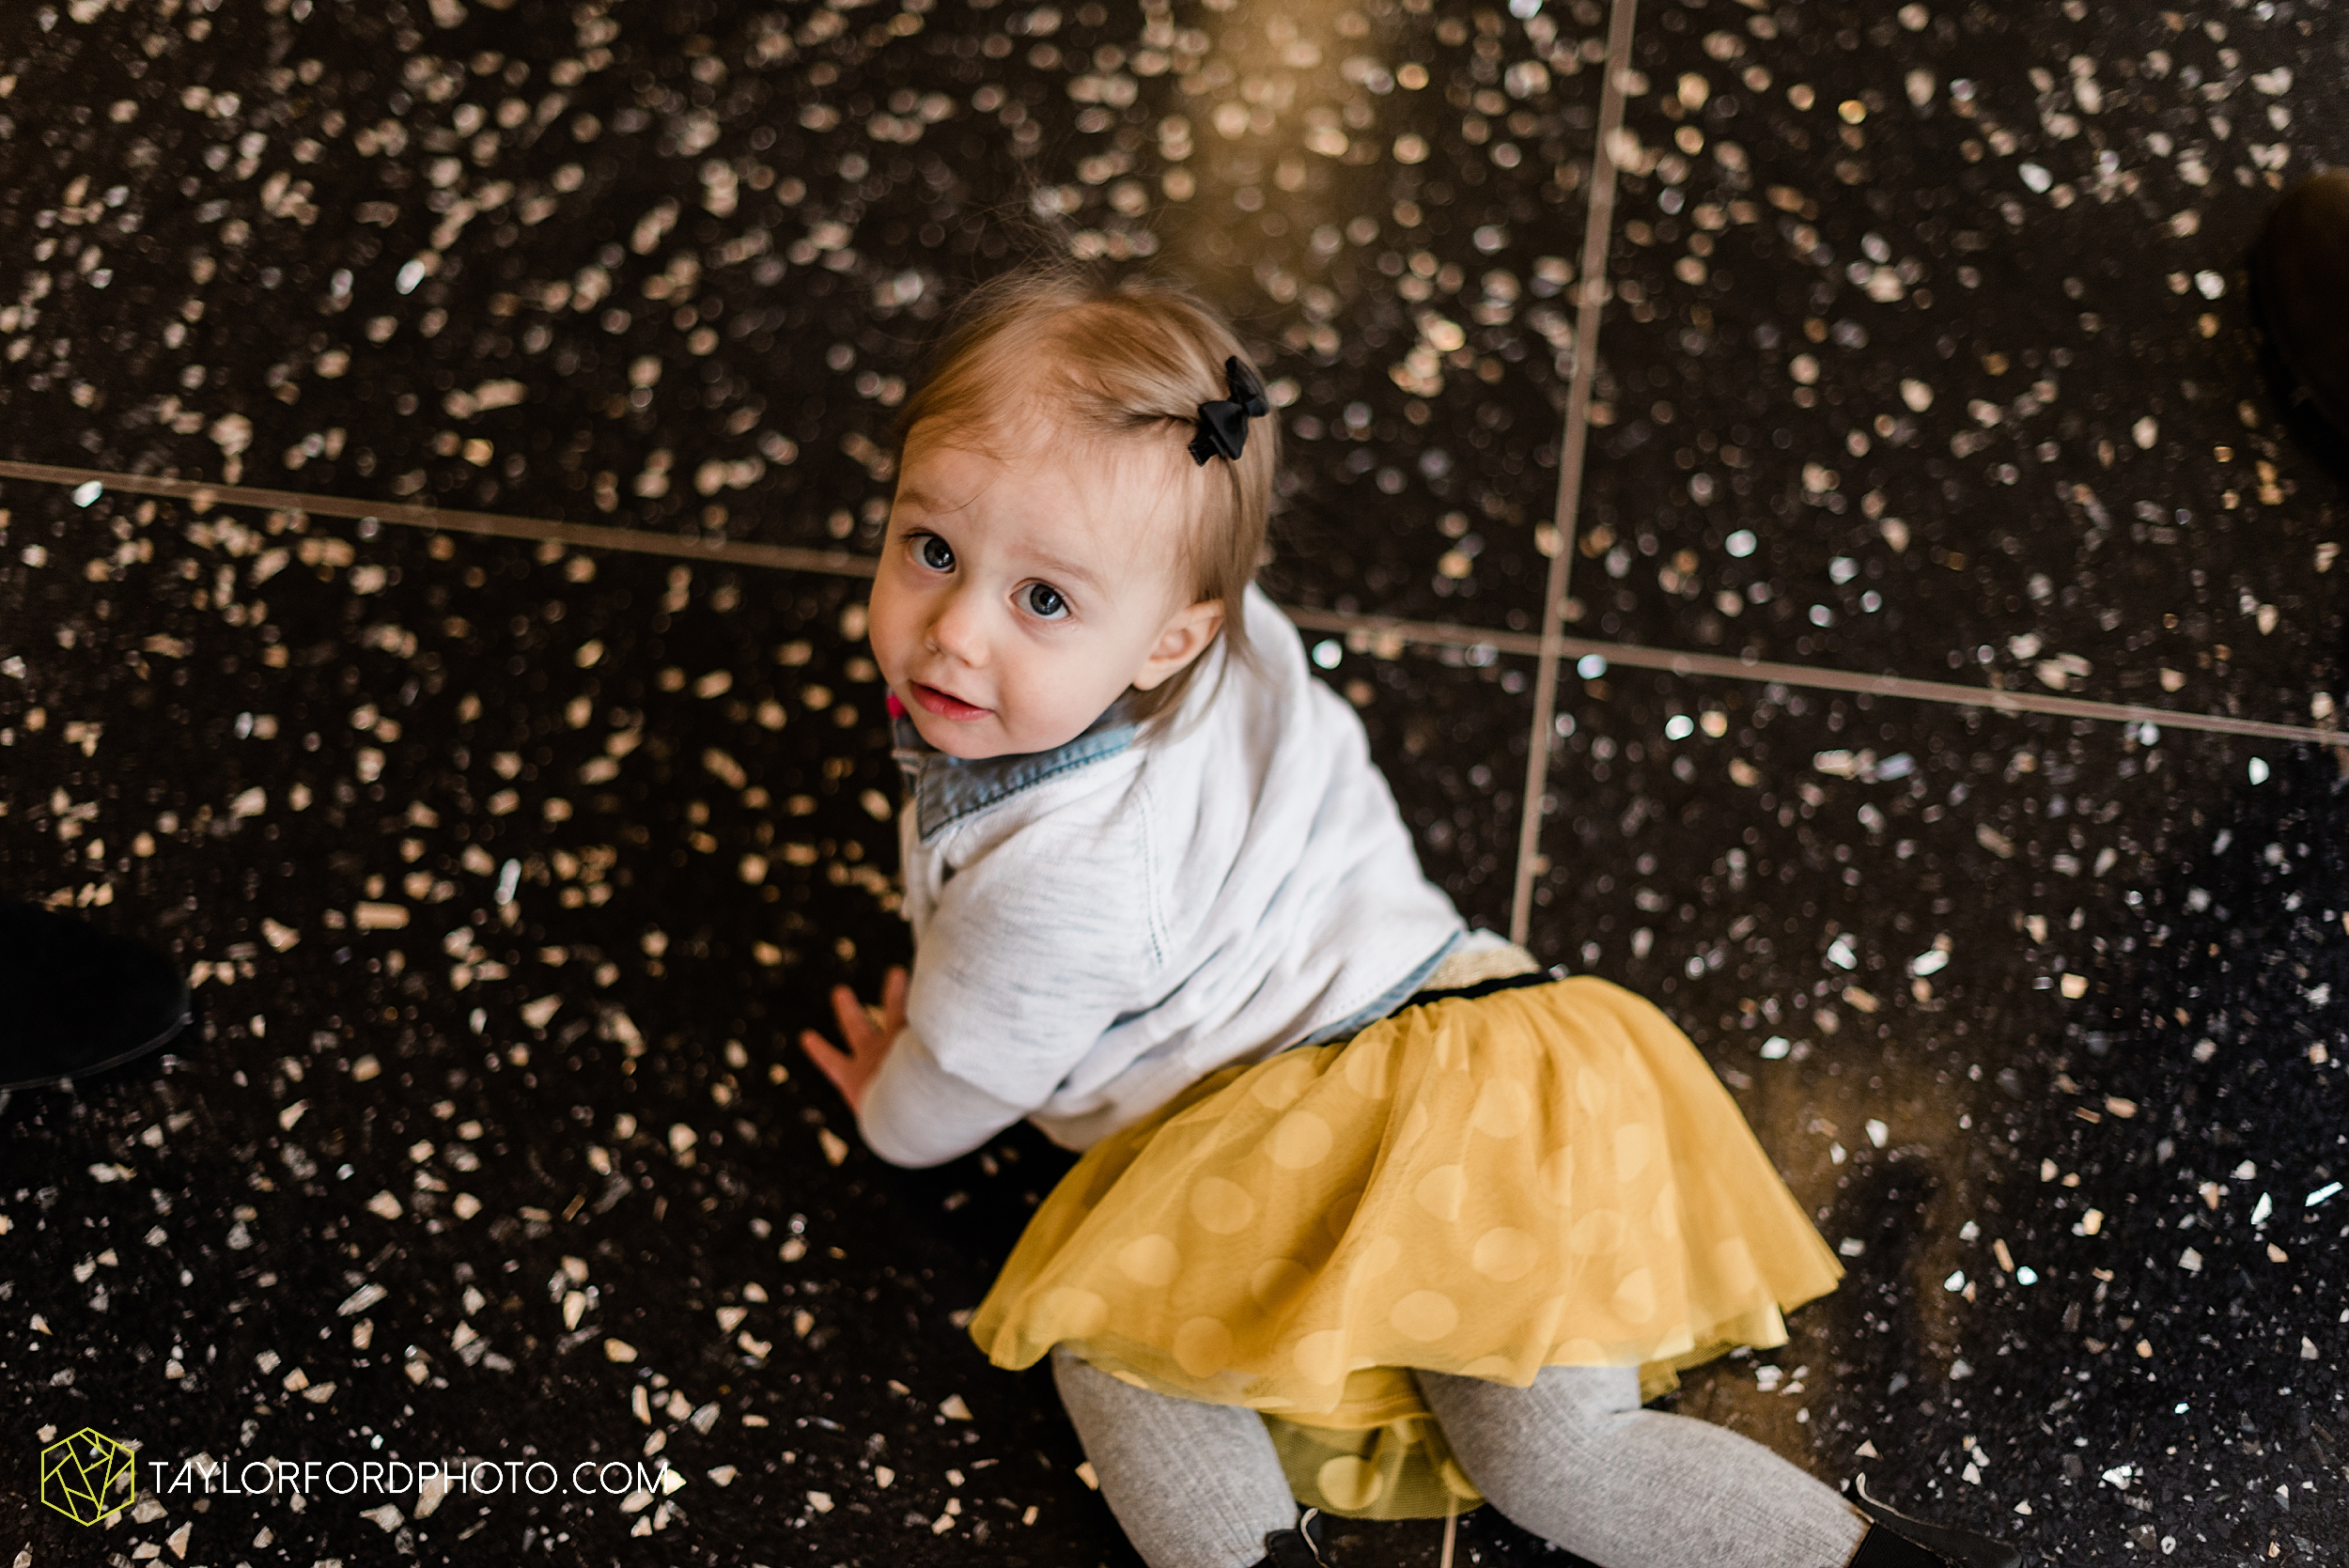 starbucks-one-1-year-old-brita-downtown-grand-wayne-at-home-family-fort-wayne-indiana-photography-taylor-ford-hirschy-photographer_2401.jpg